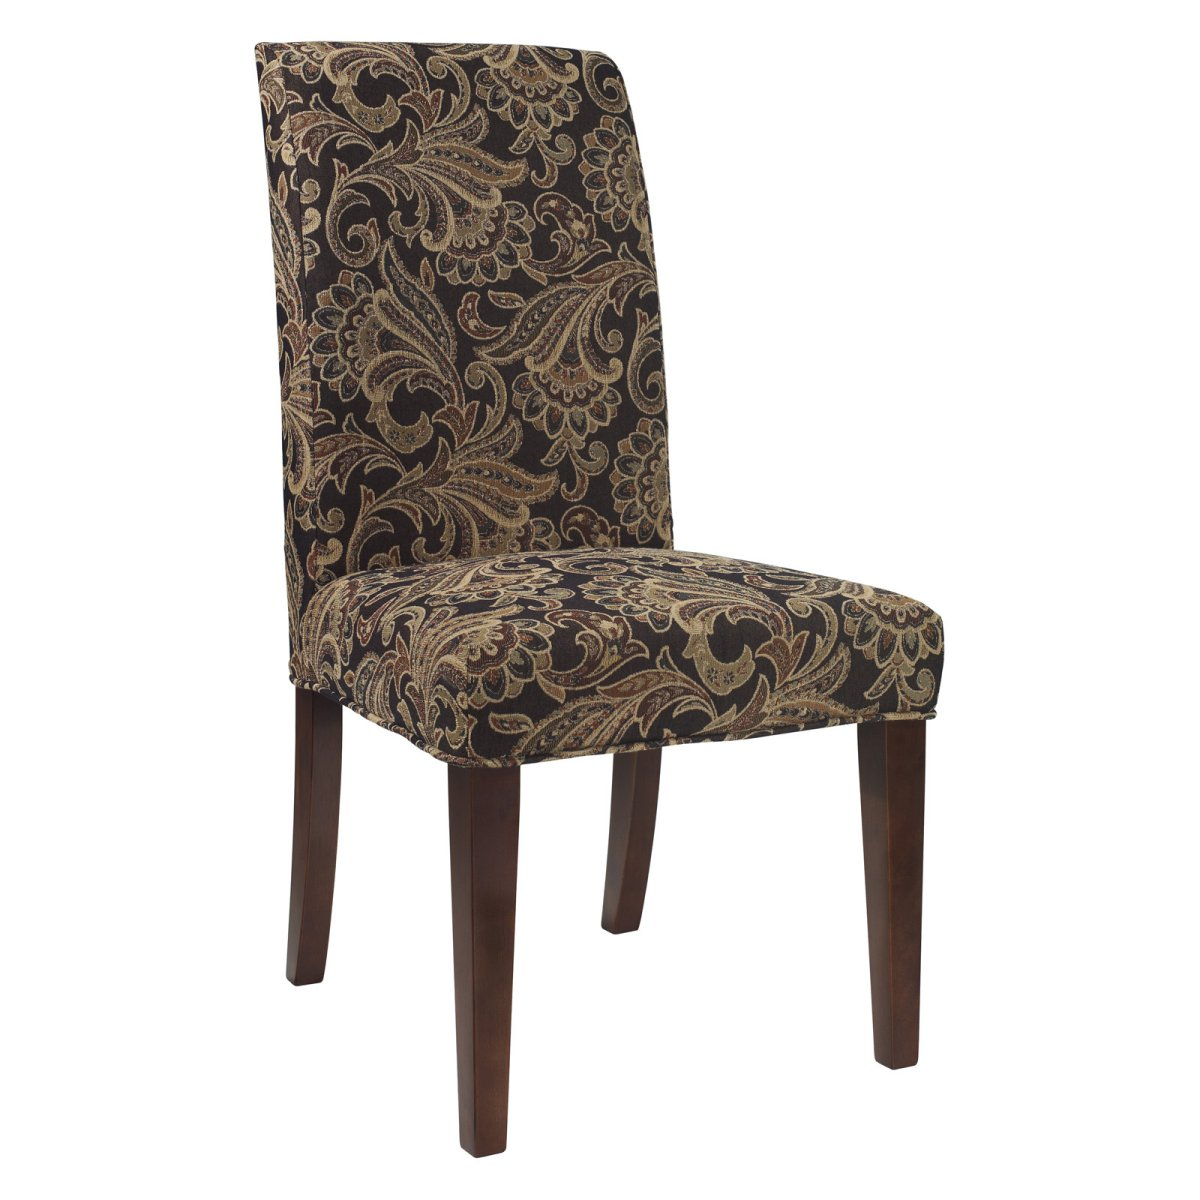 Autumn Graphics Picture Autumn Dining Chair Cover : Autumn Dining Chair Cover1 from autumngraphicspicture.blogspot.com size 1200 x 1200 jpeg 146kB